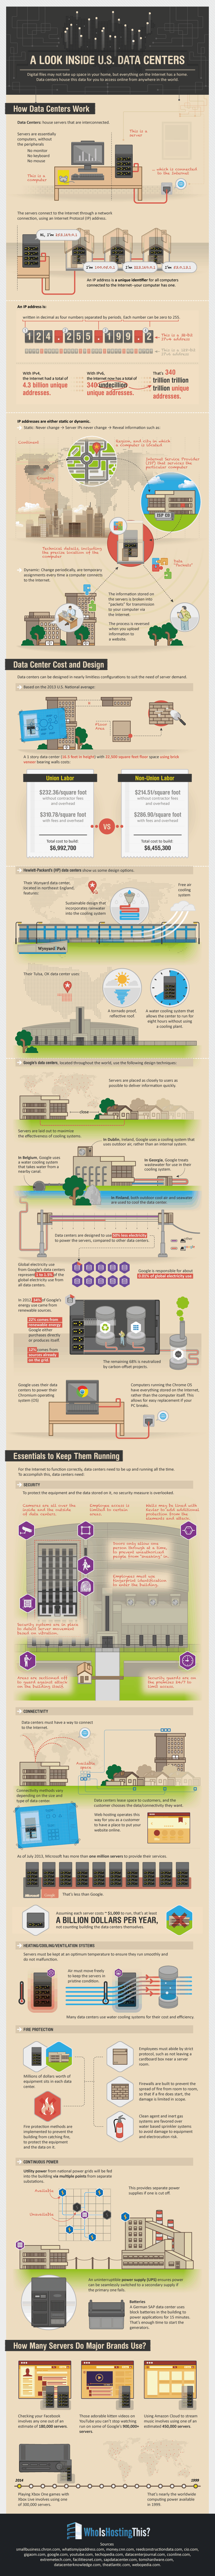 A Look Inside U.S. Data Centres